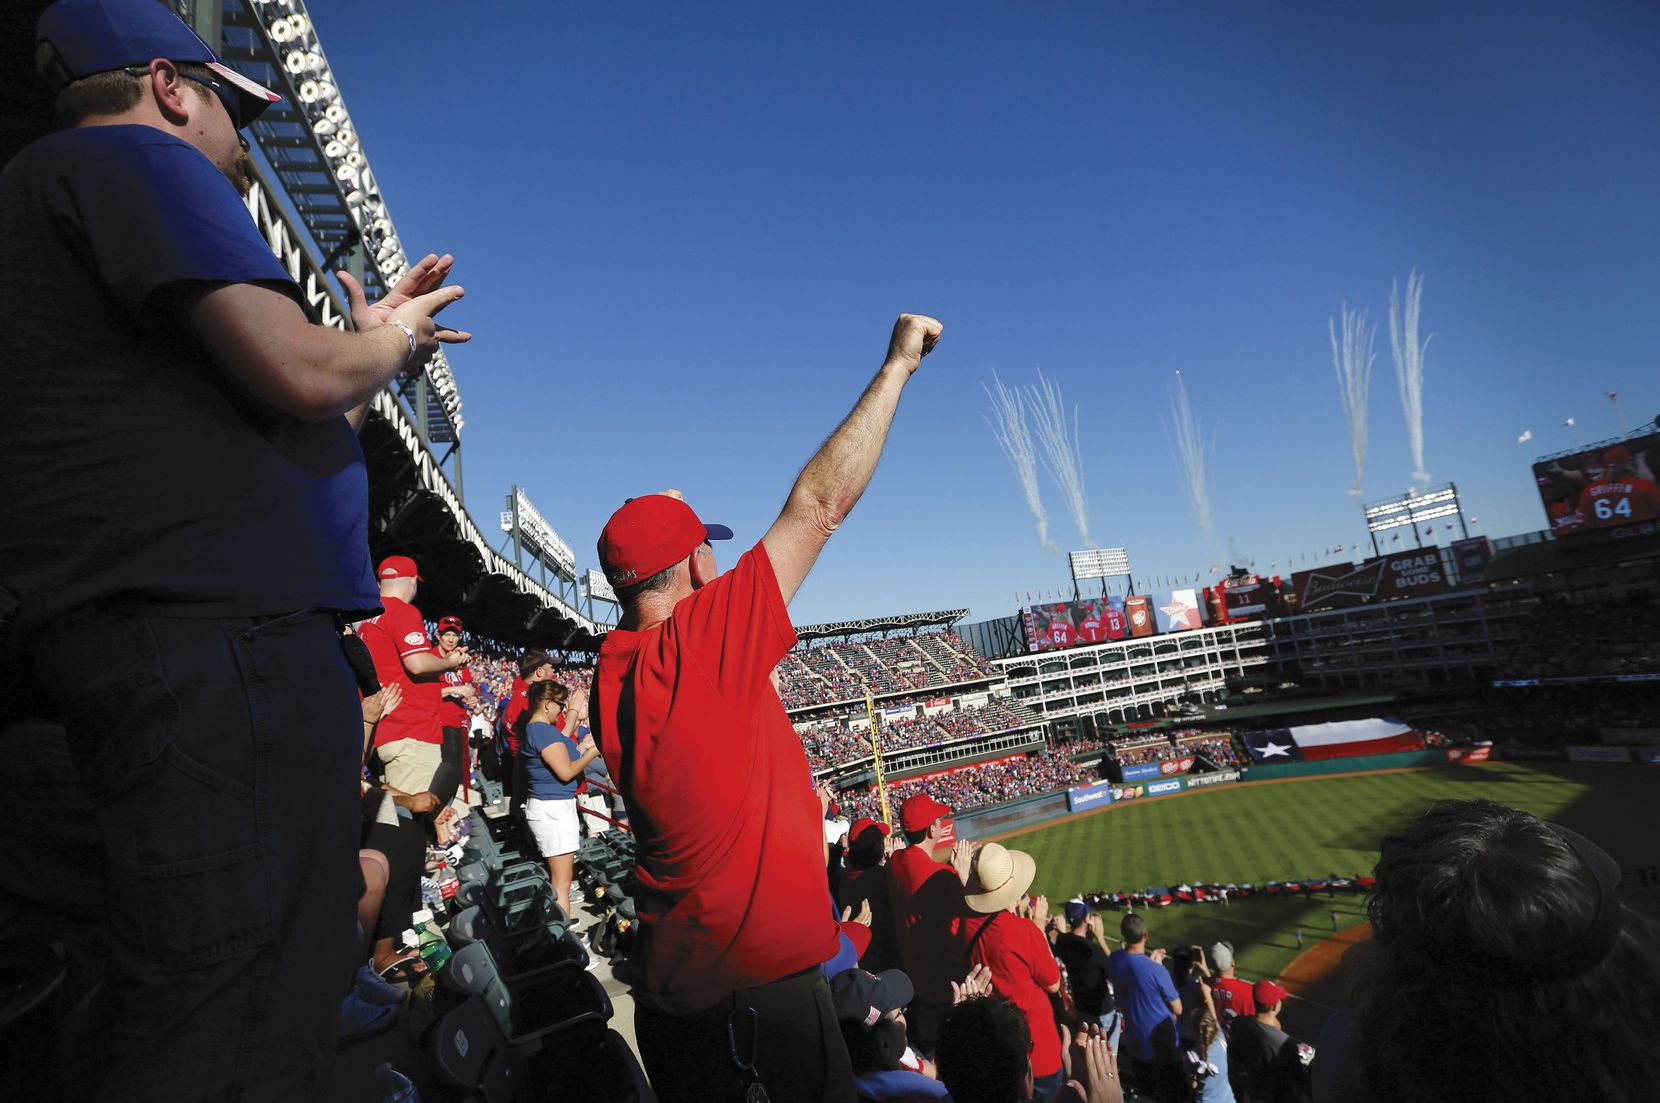 Fans and fireworks celebrate Opening Day for the Texas Rangers as the team takes on the Cleveland Indians at Globe Life Park in Arlington.